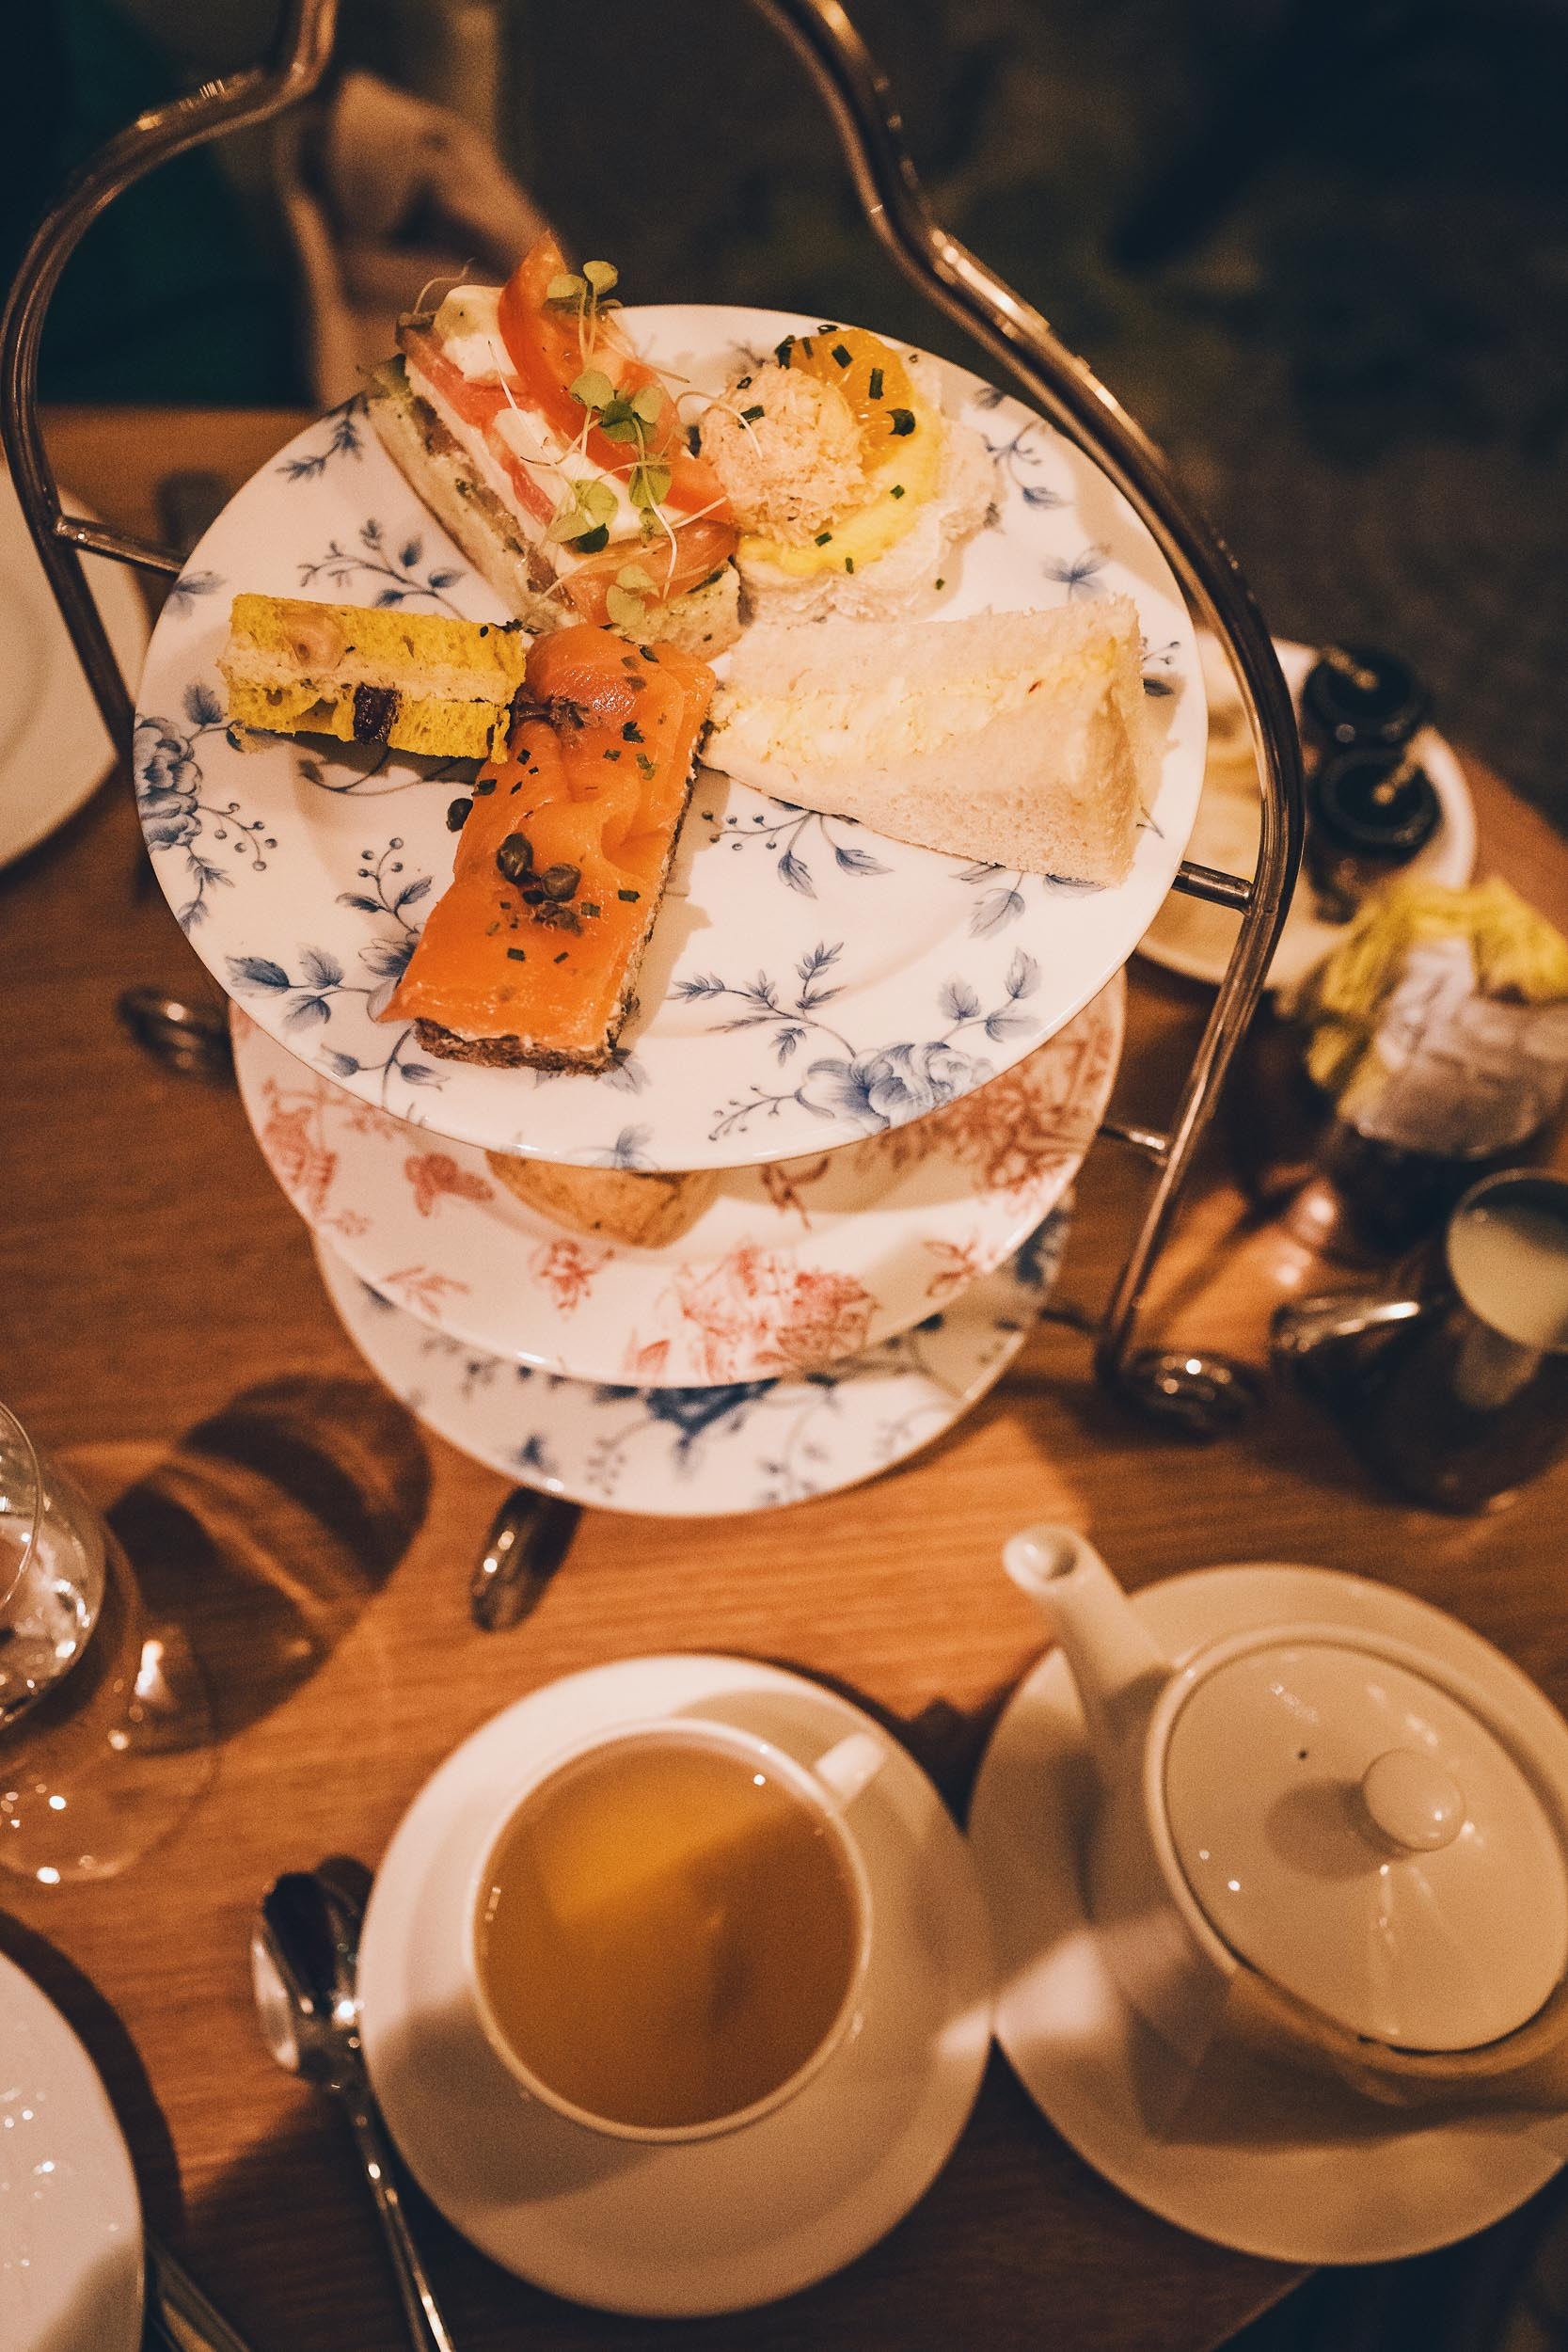 Afternoon Tea at the Fairmont San Francisco - an absolute must to all visitors of the bay!